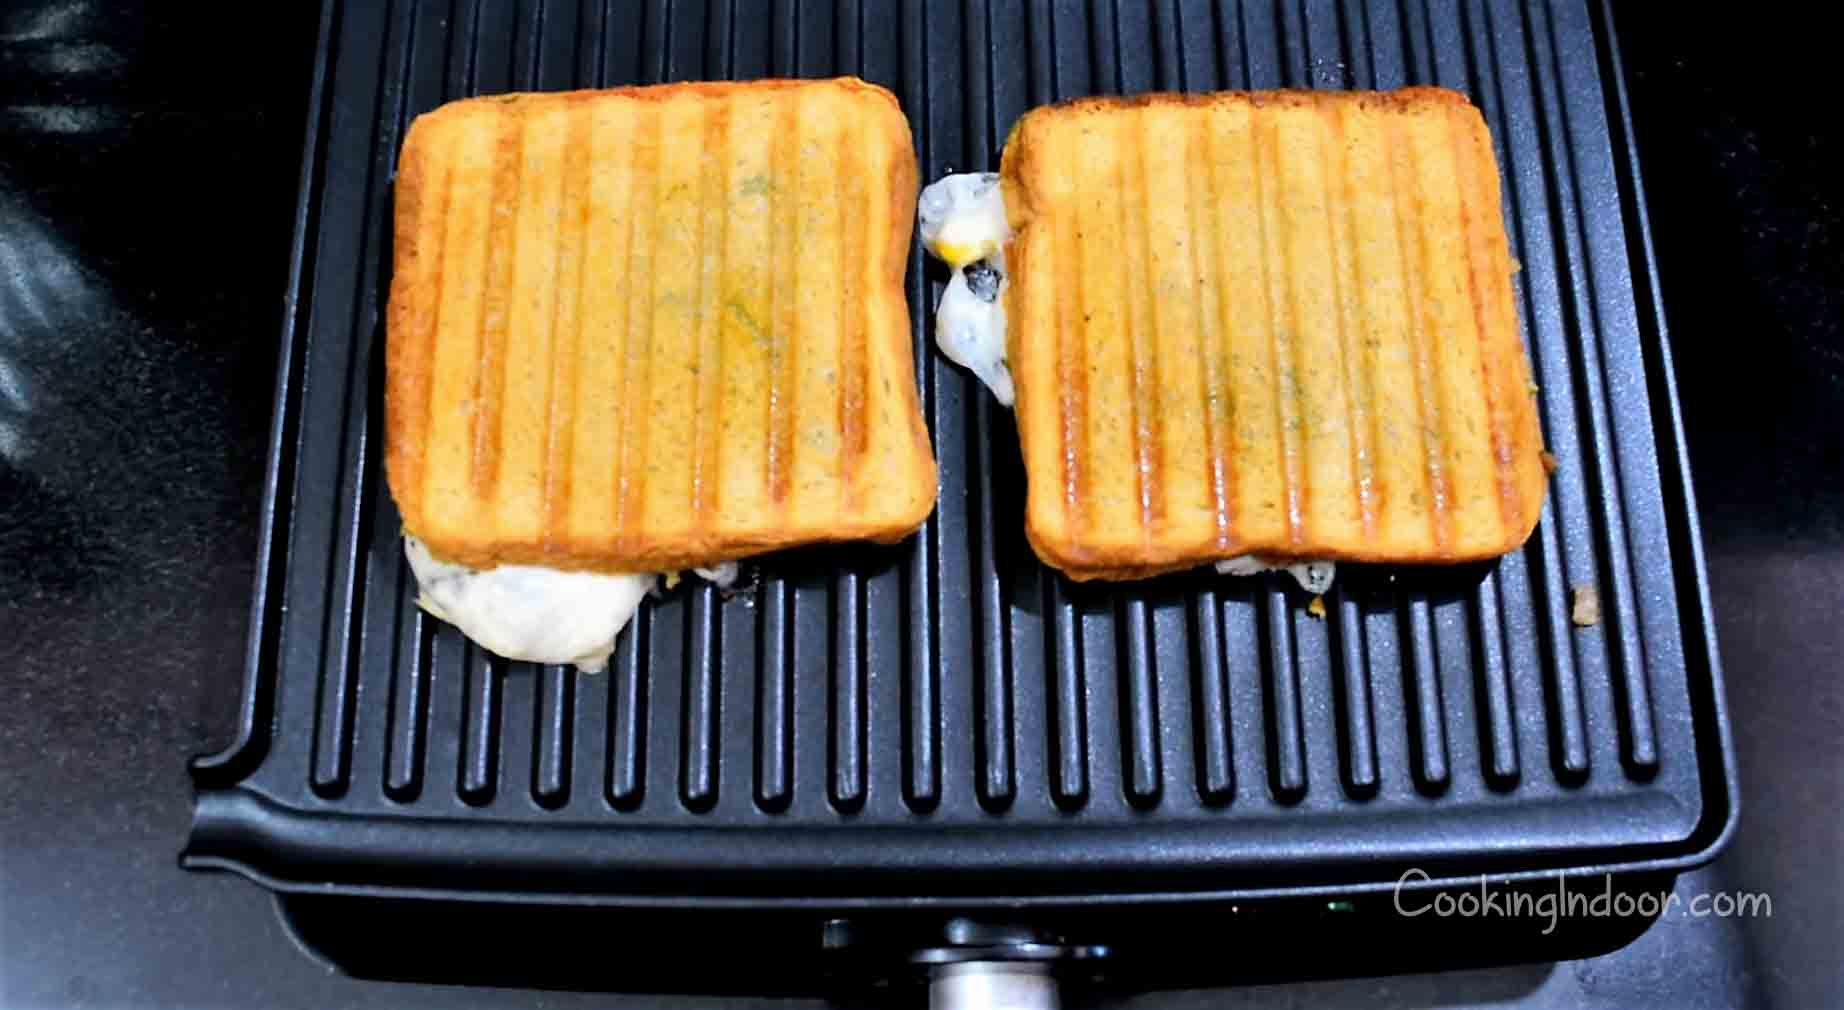 5 Best Sandwich Grill Toasters Recommended By Experts In 2021 Cooking Indoor